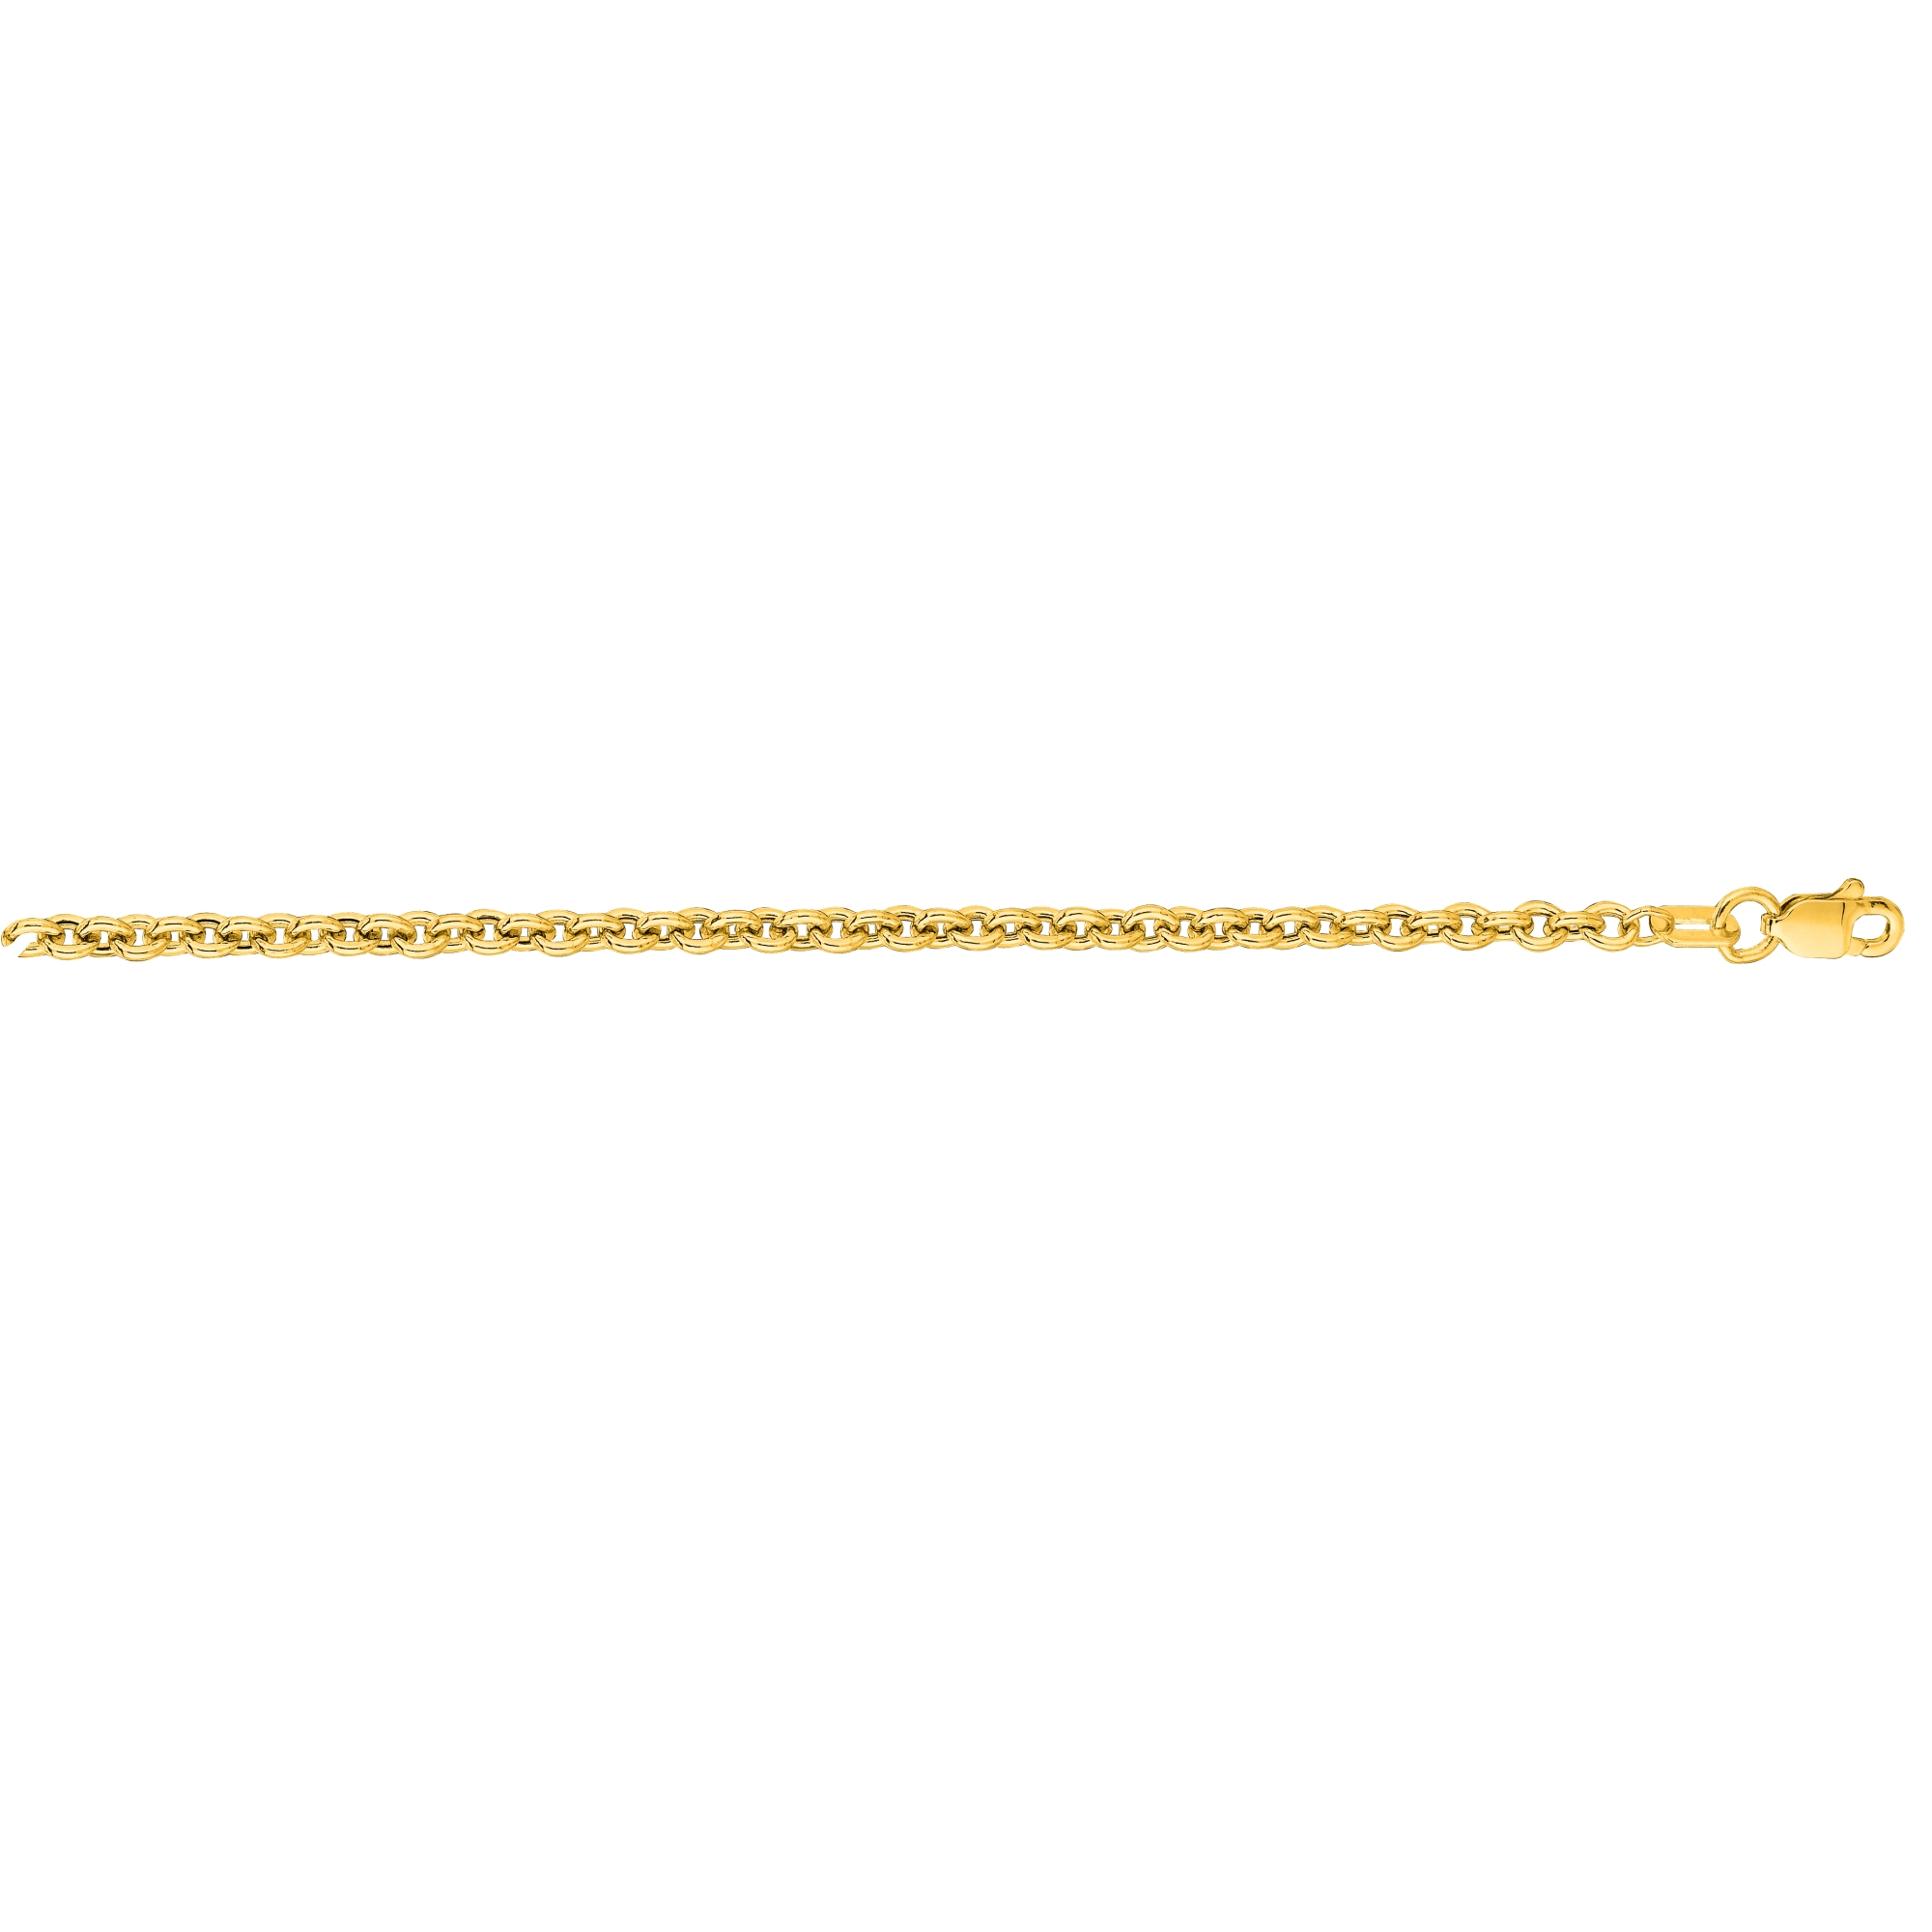 Hollow 14k Gold Forsantina Chain For Men & Women 3mm Wide